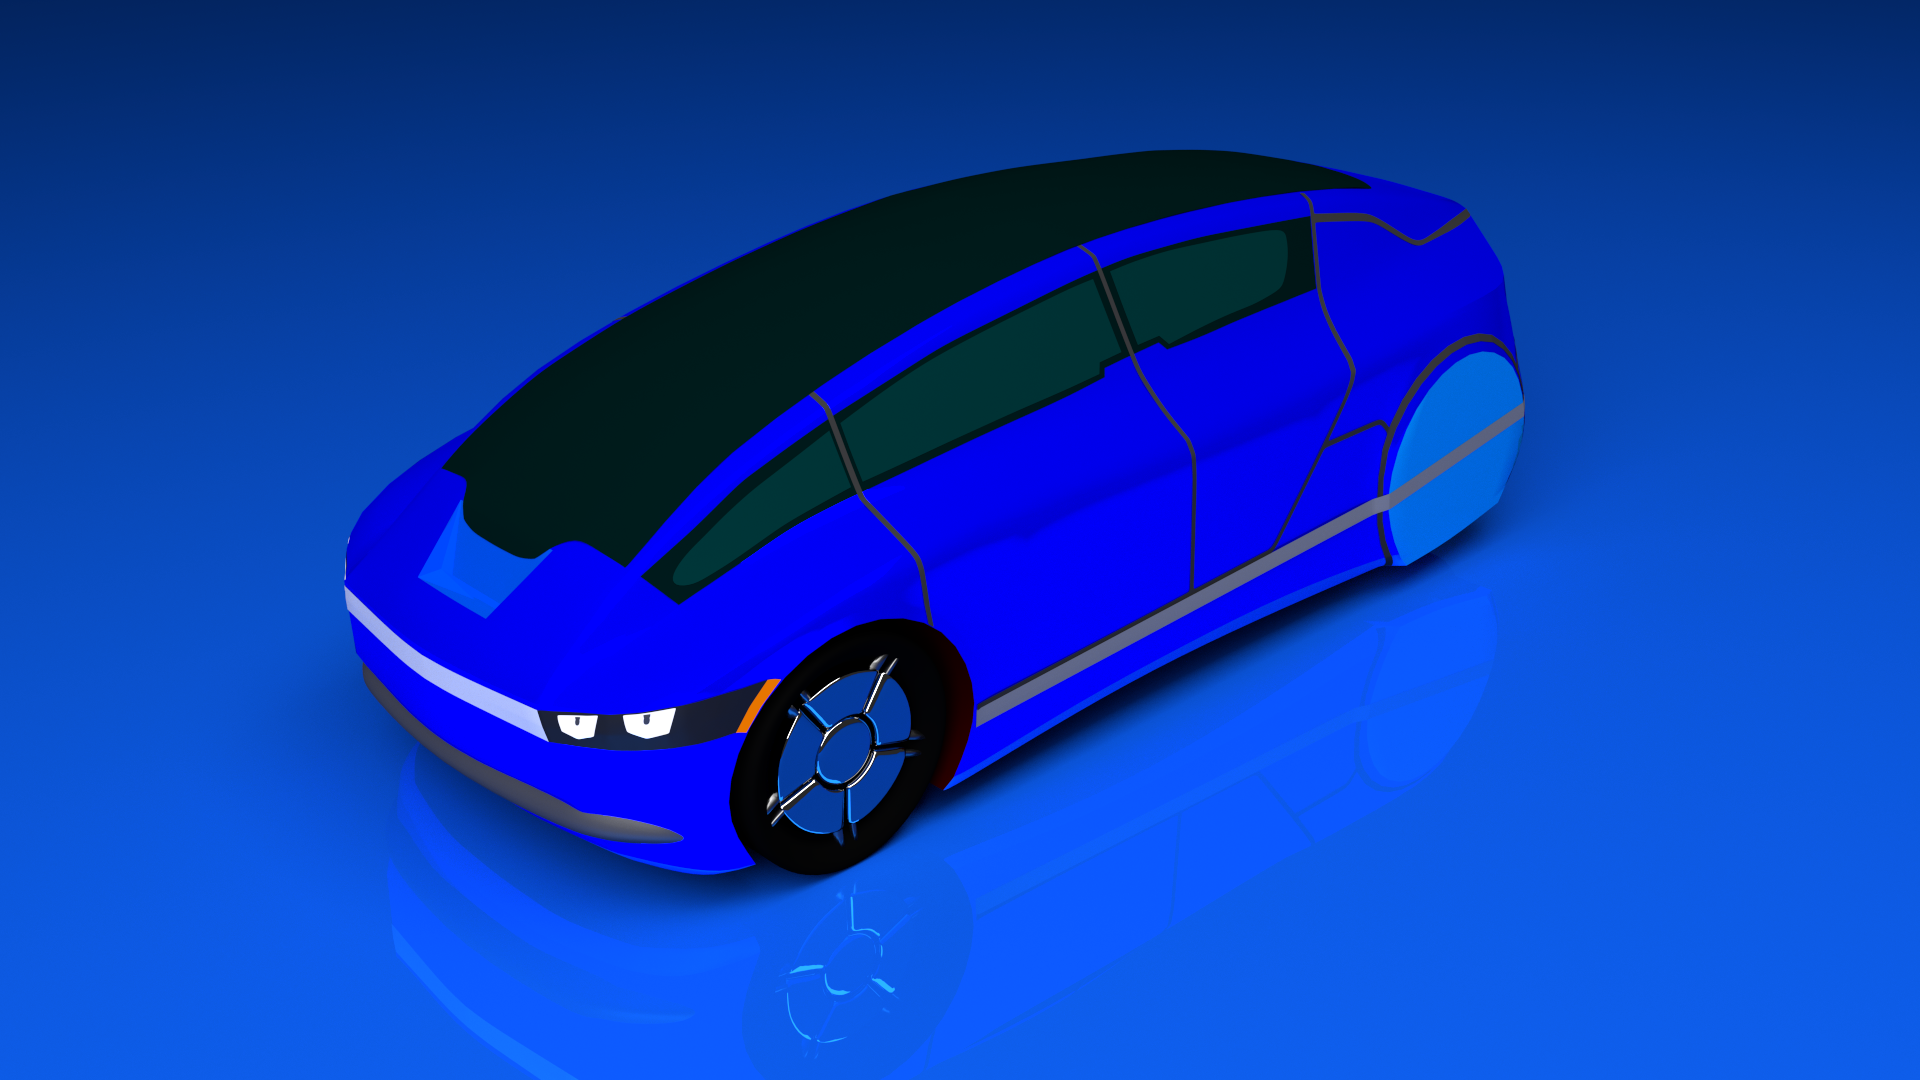 Super car dream 2 code a car that i created myself with the help of a tutorial i used blueprints to create this car and then i used materials using blender software malvernweather Gallery